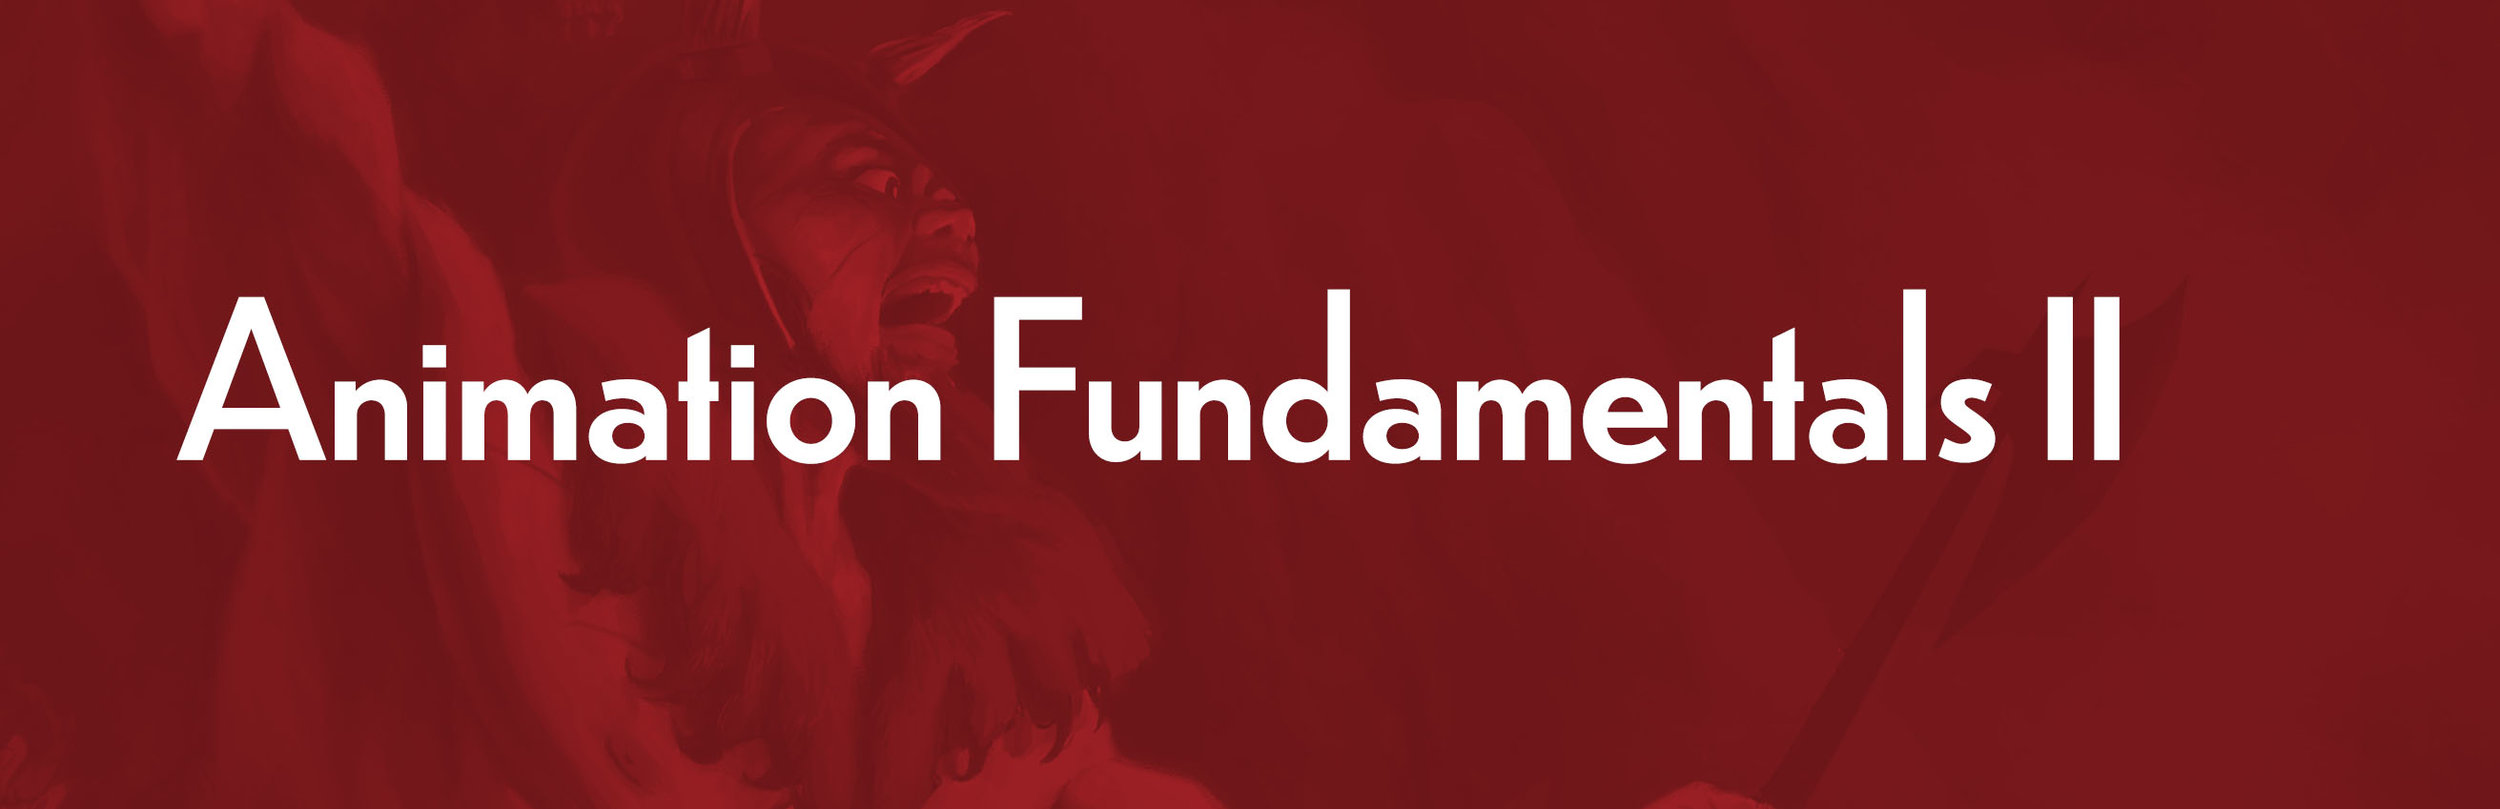 Animation Fundamentals II - Header 2019.jpg